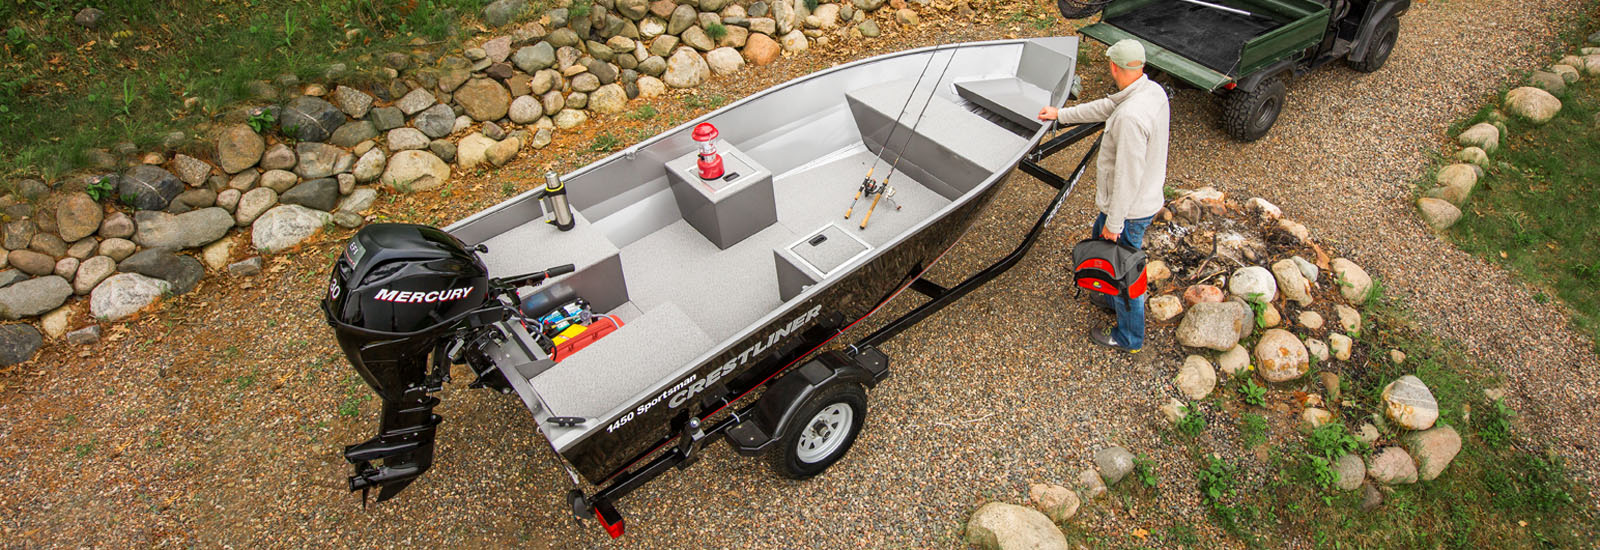 Sportsman Small lightweight and heavy duty aluminum fishing boats